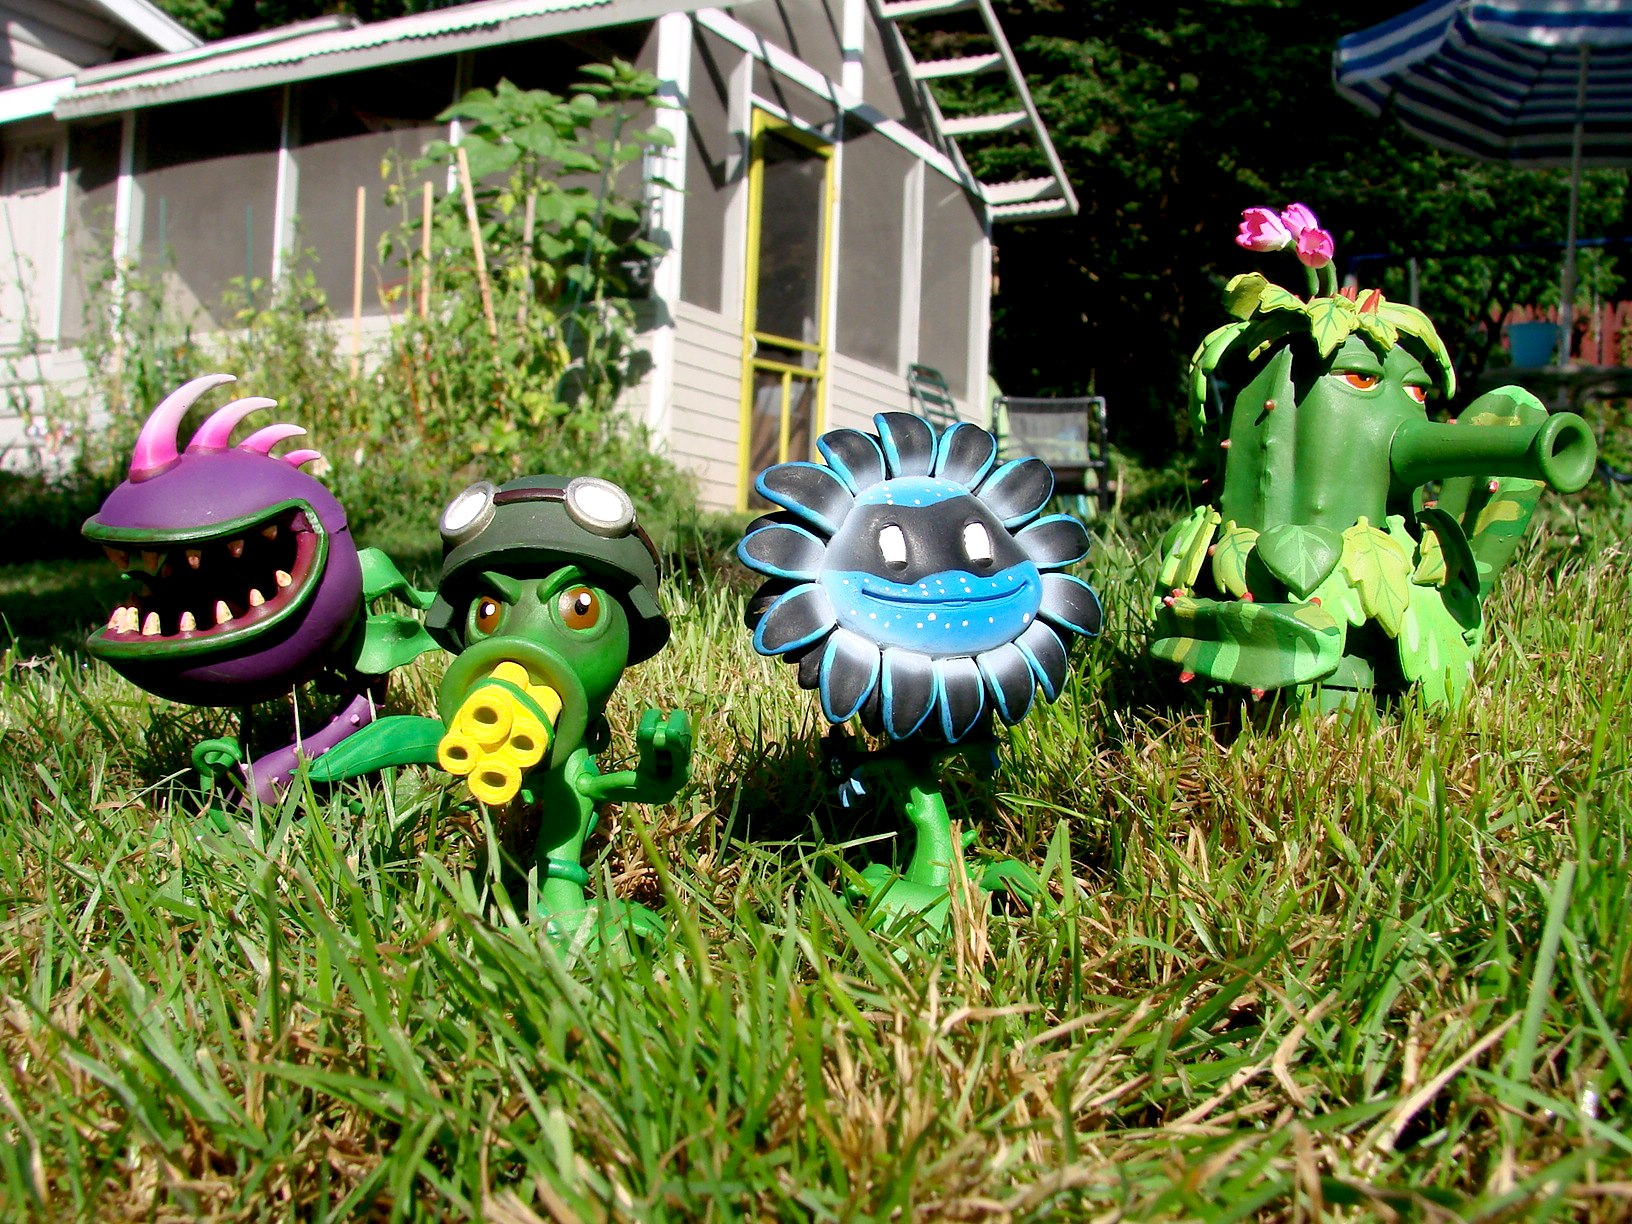 Plants vs zombies garden warfare toys update the toyark - Free plants vs zombies garden warfare ...